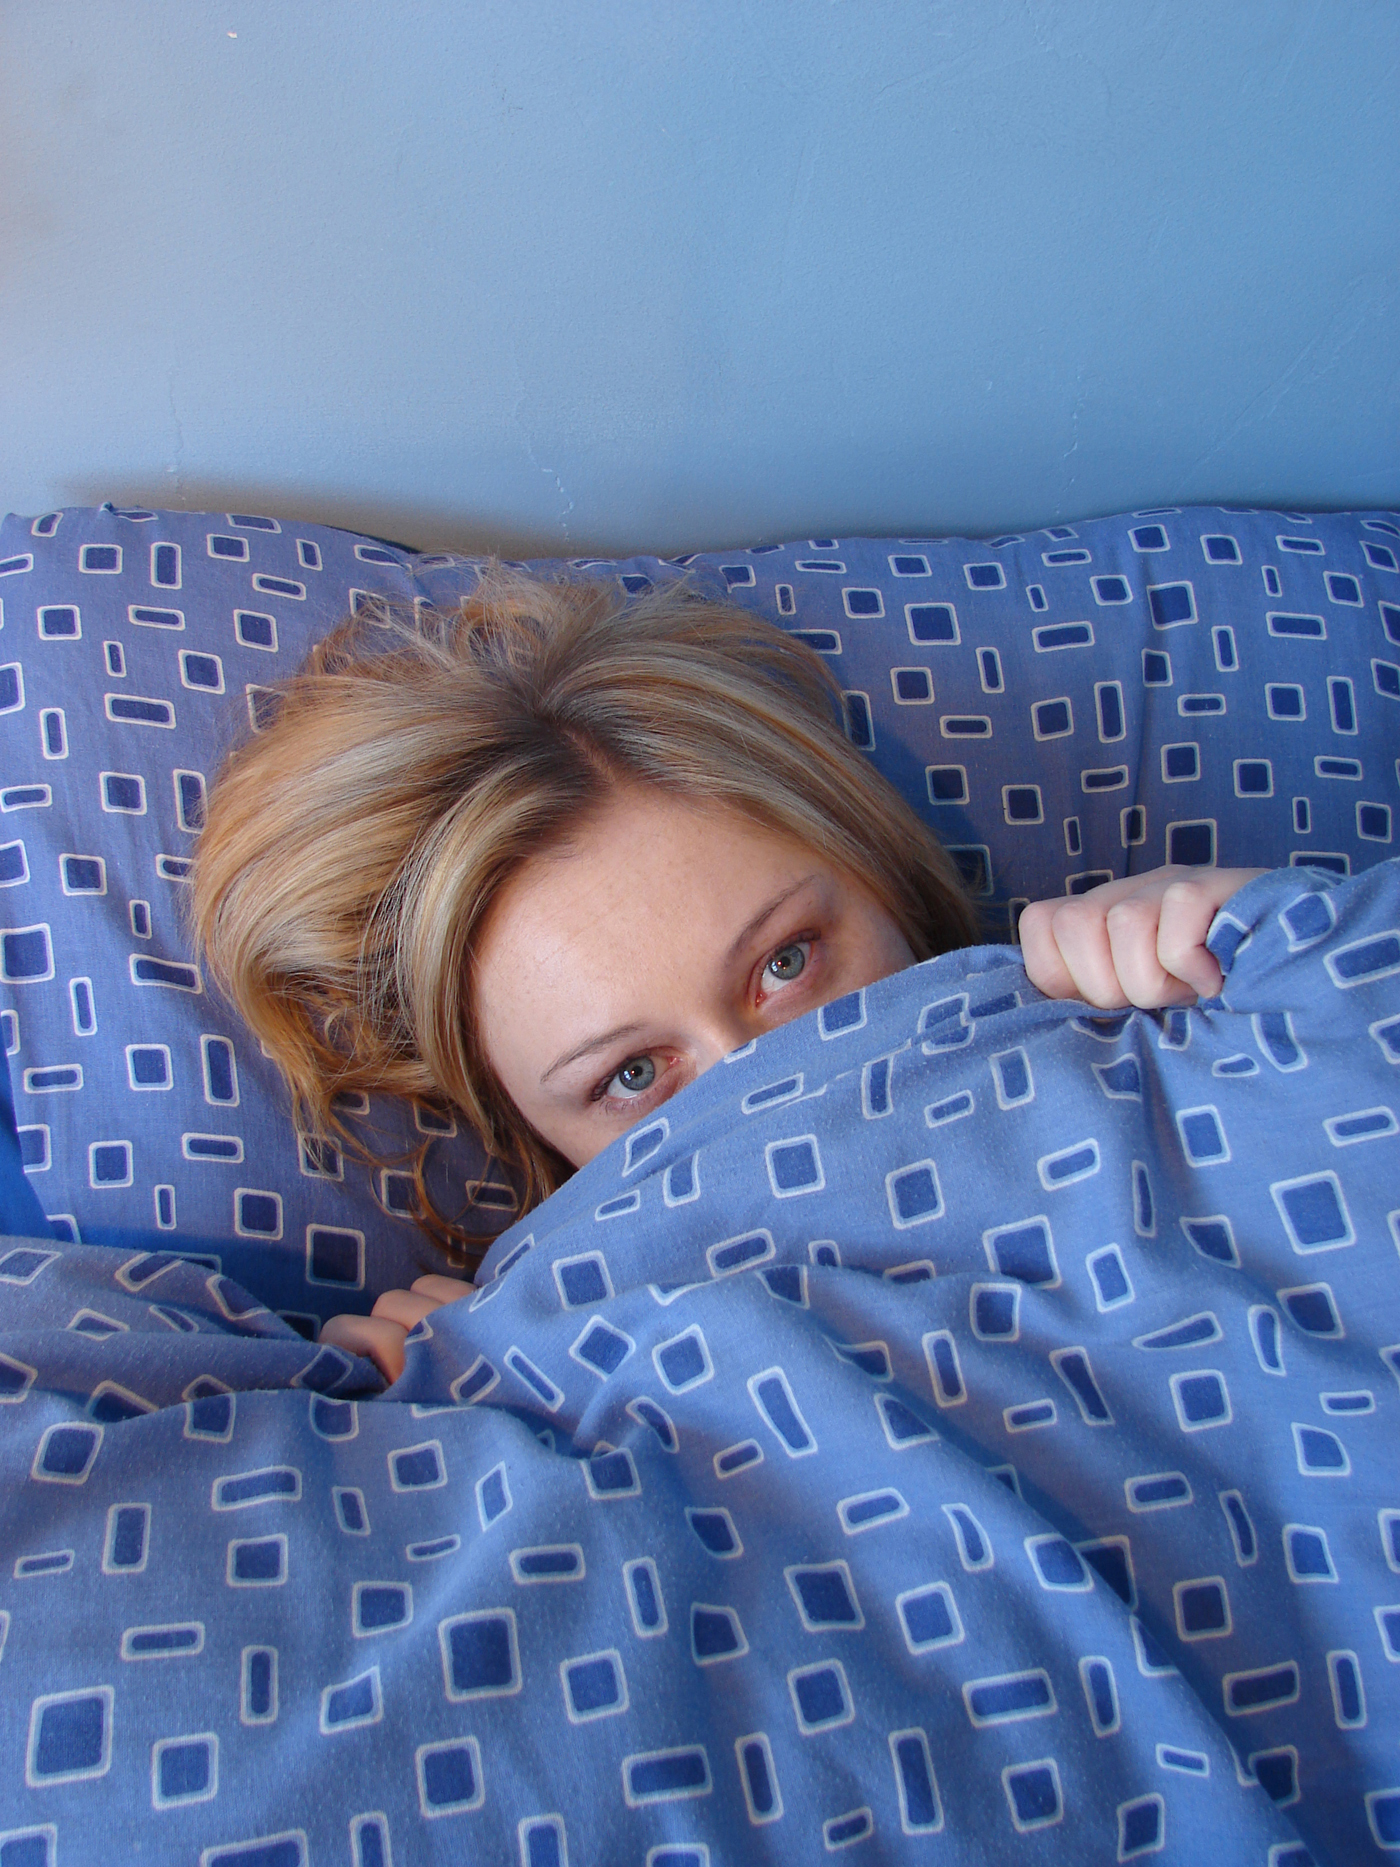 Have you ever been tempted to call in sick and have a duvet day rather than go into work?